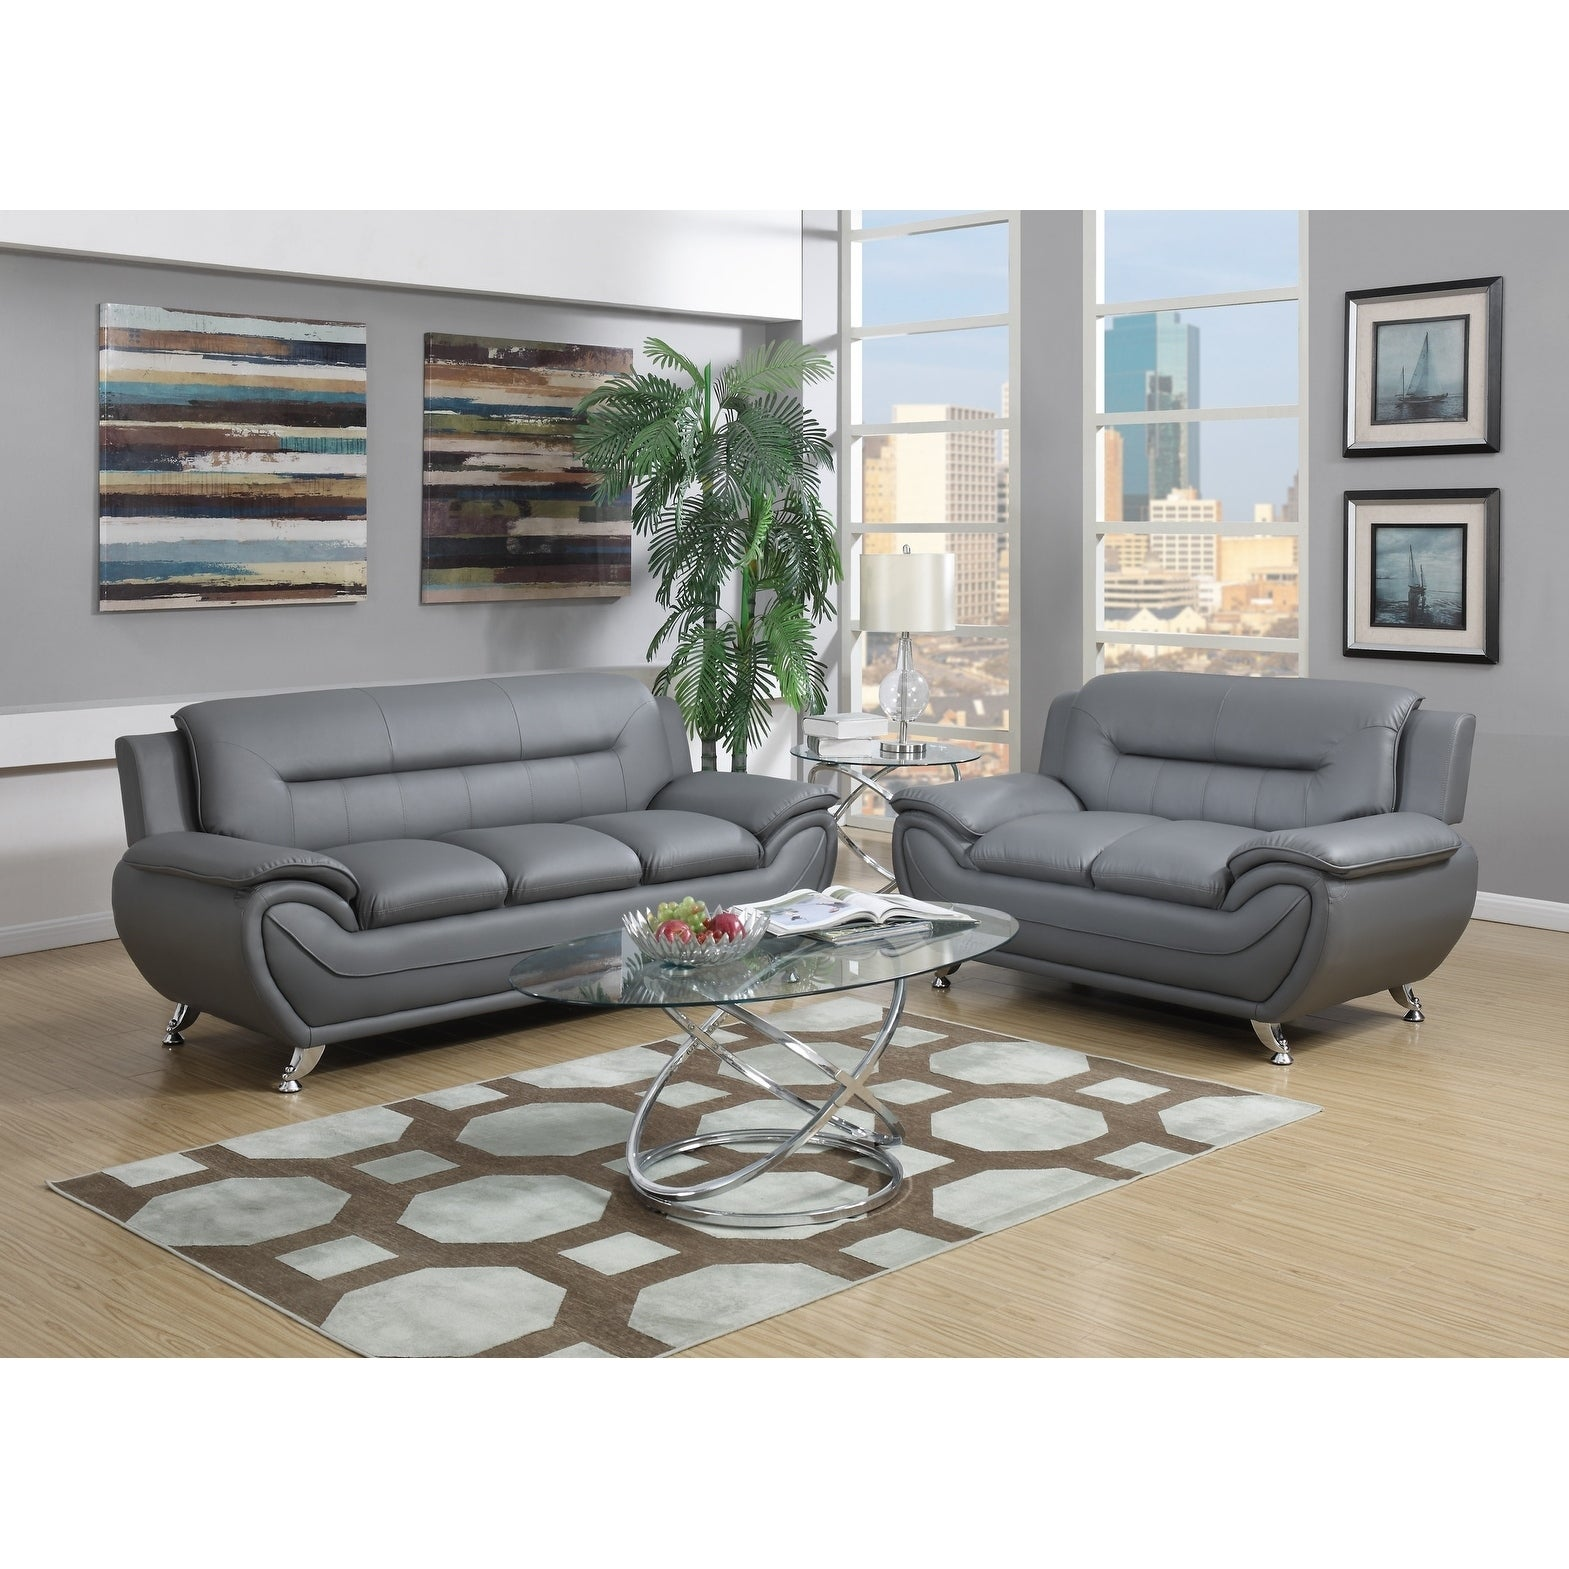 Gtu Furniture Contemporary Modern Sleek Chic And Plush Faux Leather Rich Grey Over Stuffed Loveseat Sofa Sofás De Sala On Free Shipping